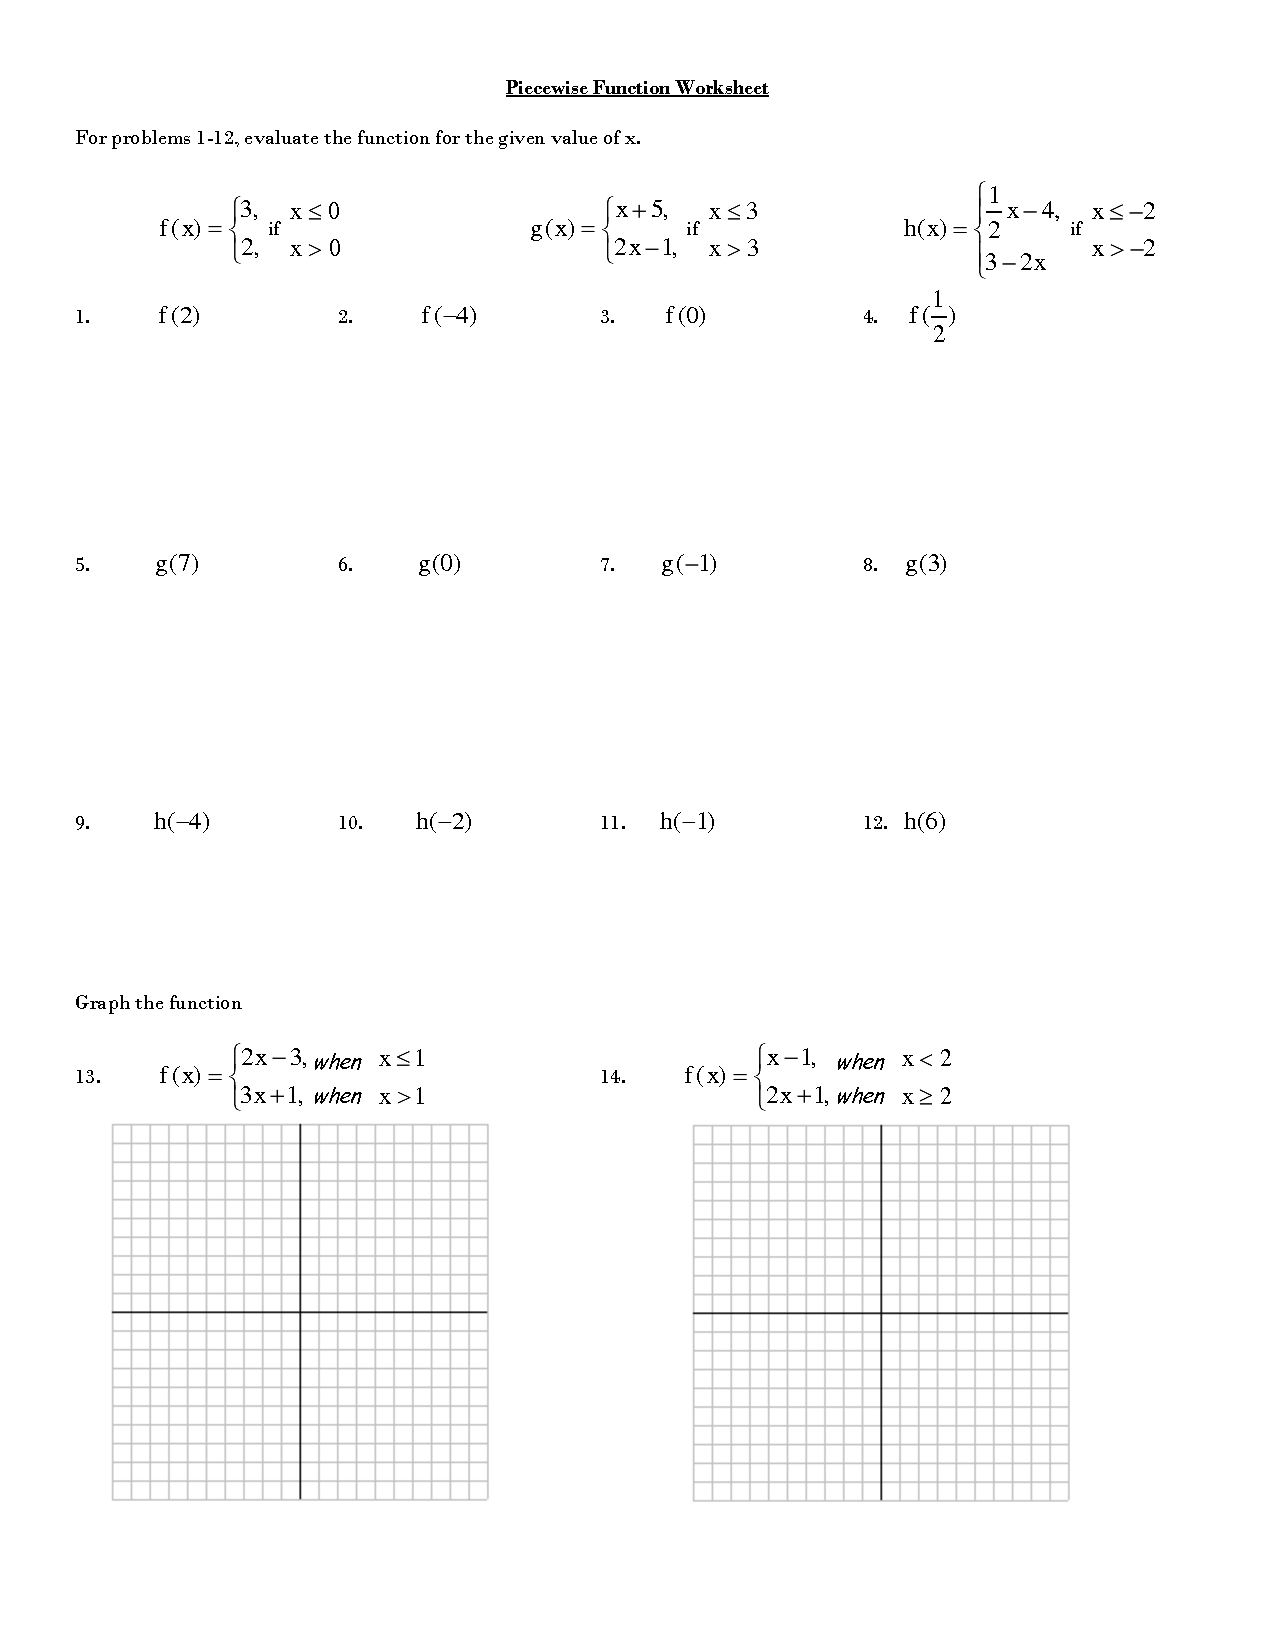 Piecewise Functions Evaluate Worksheet Answers